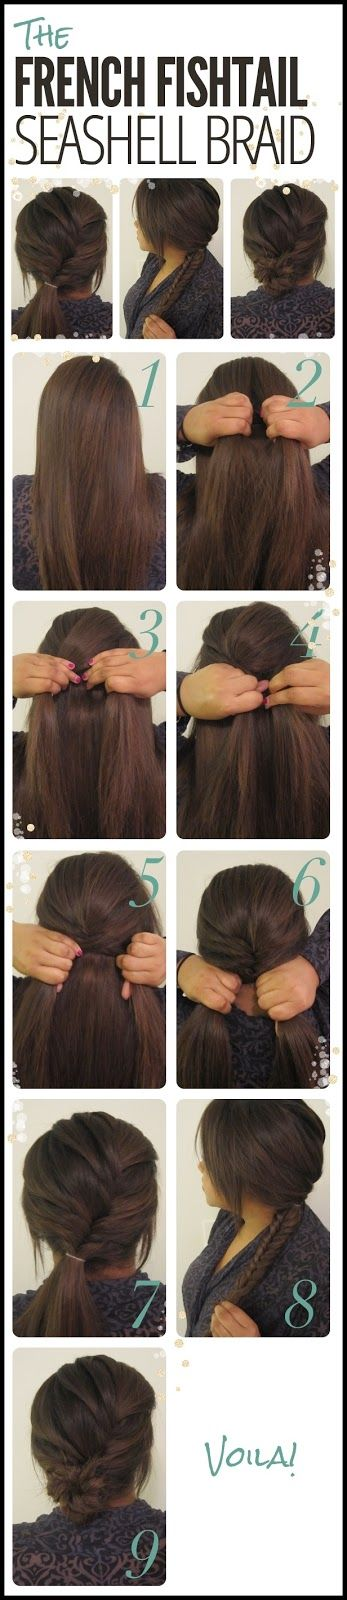 Top 5 hair braiding tutorials collection